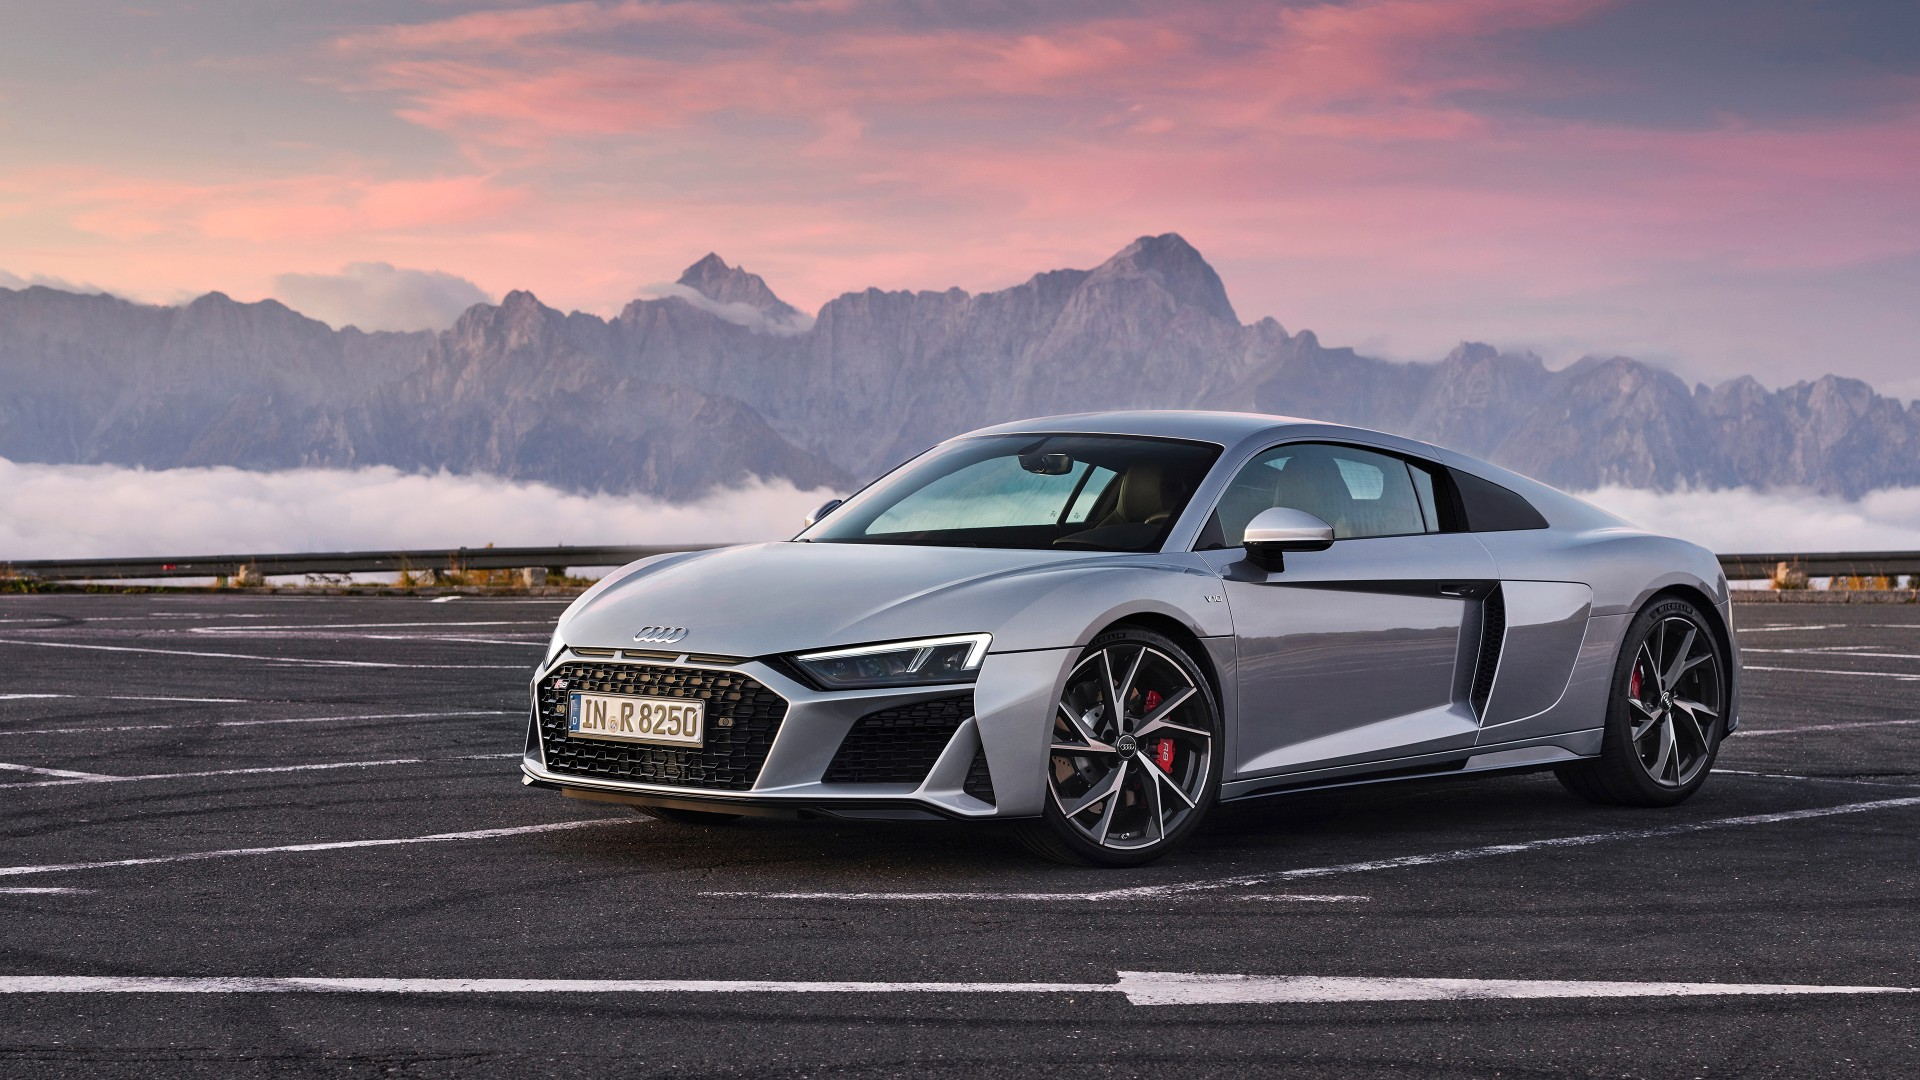 Mercedes Benz Coupe >> Audi R8 V10 RWD Coupe 2019 4K Wallpaper | HD Car Wallpapers | ID #13607